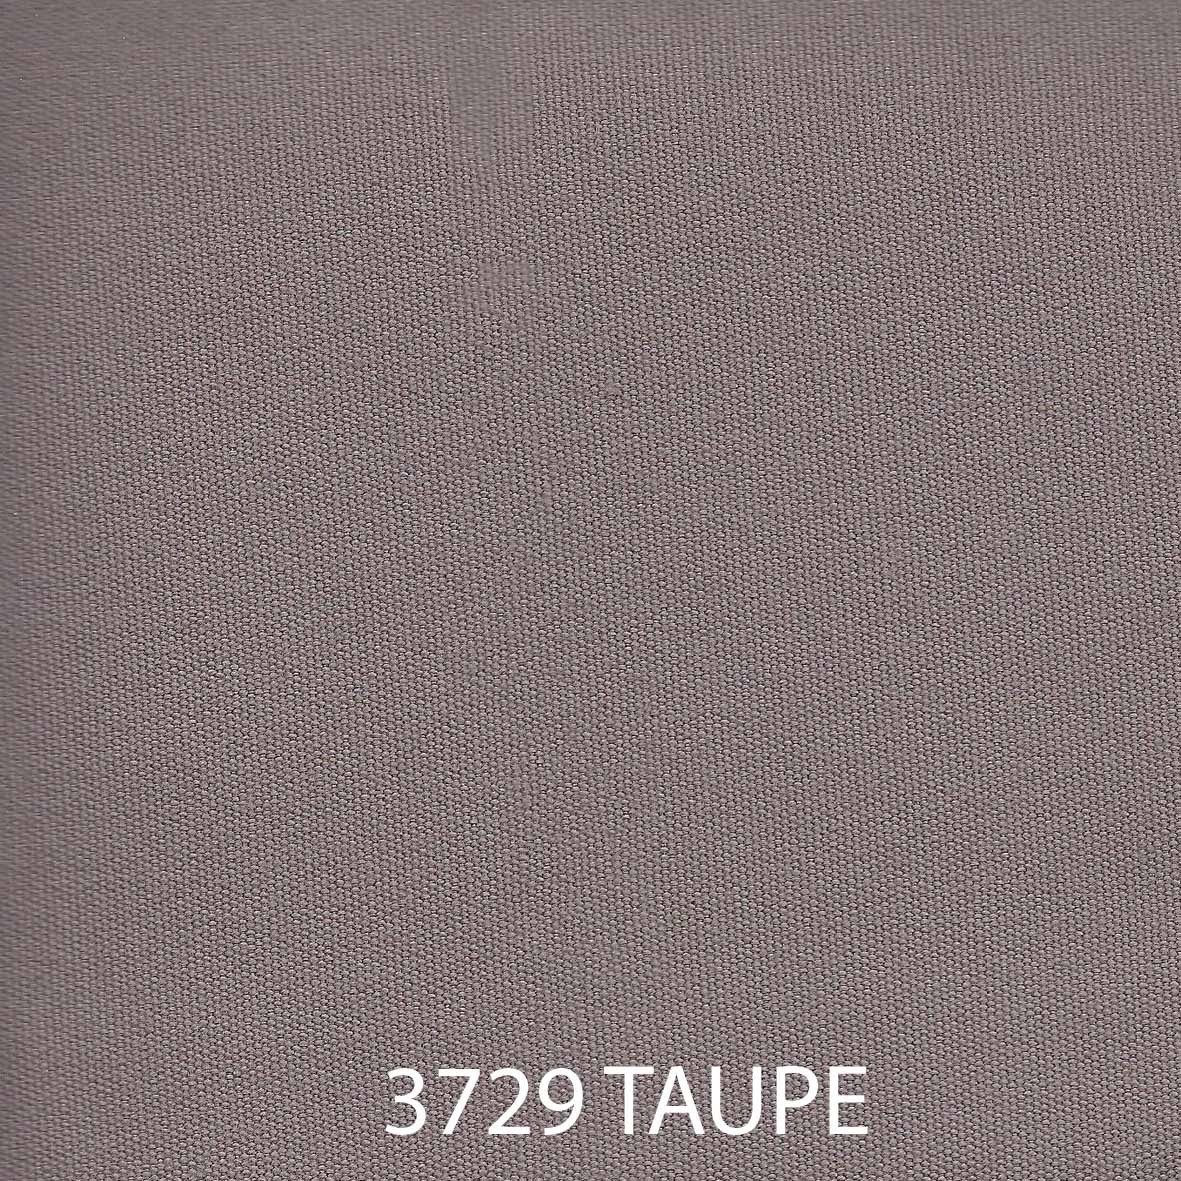 Apollo Red - Leather